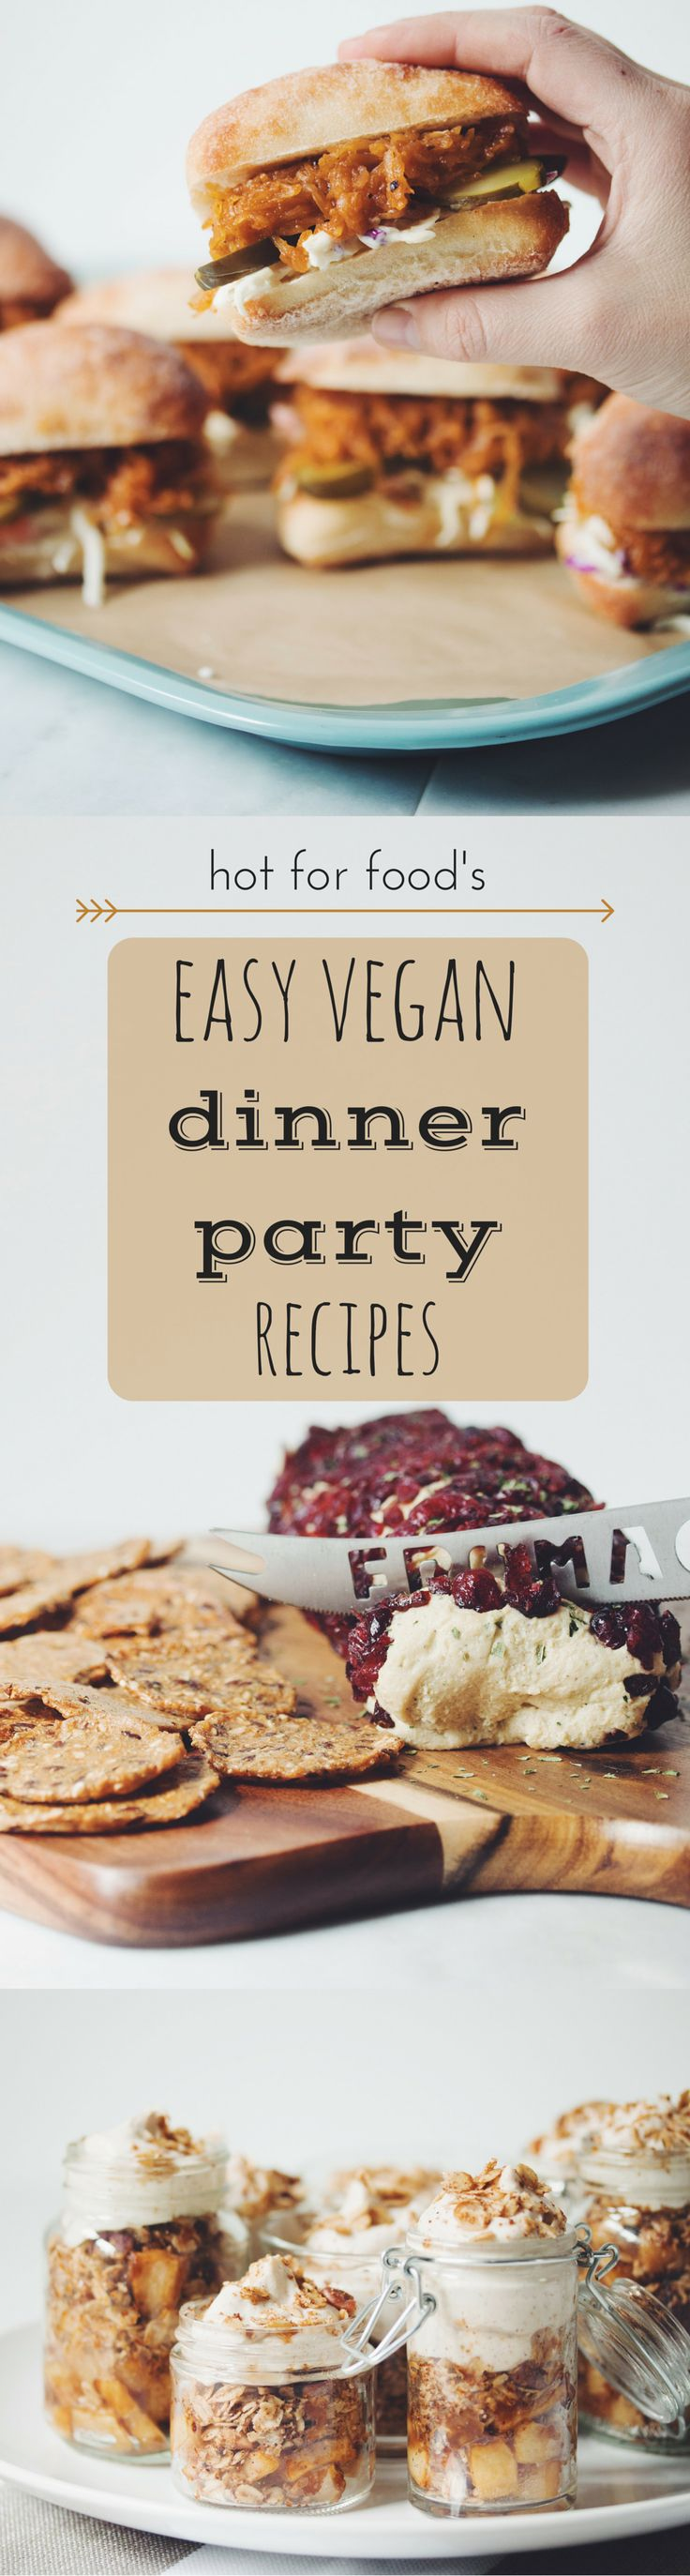 easy vegan dinner party recipes | RECIPES on hotforfoodblog.com